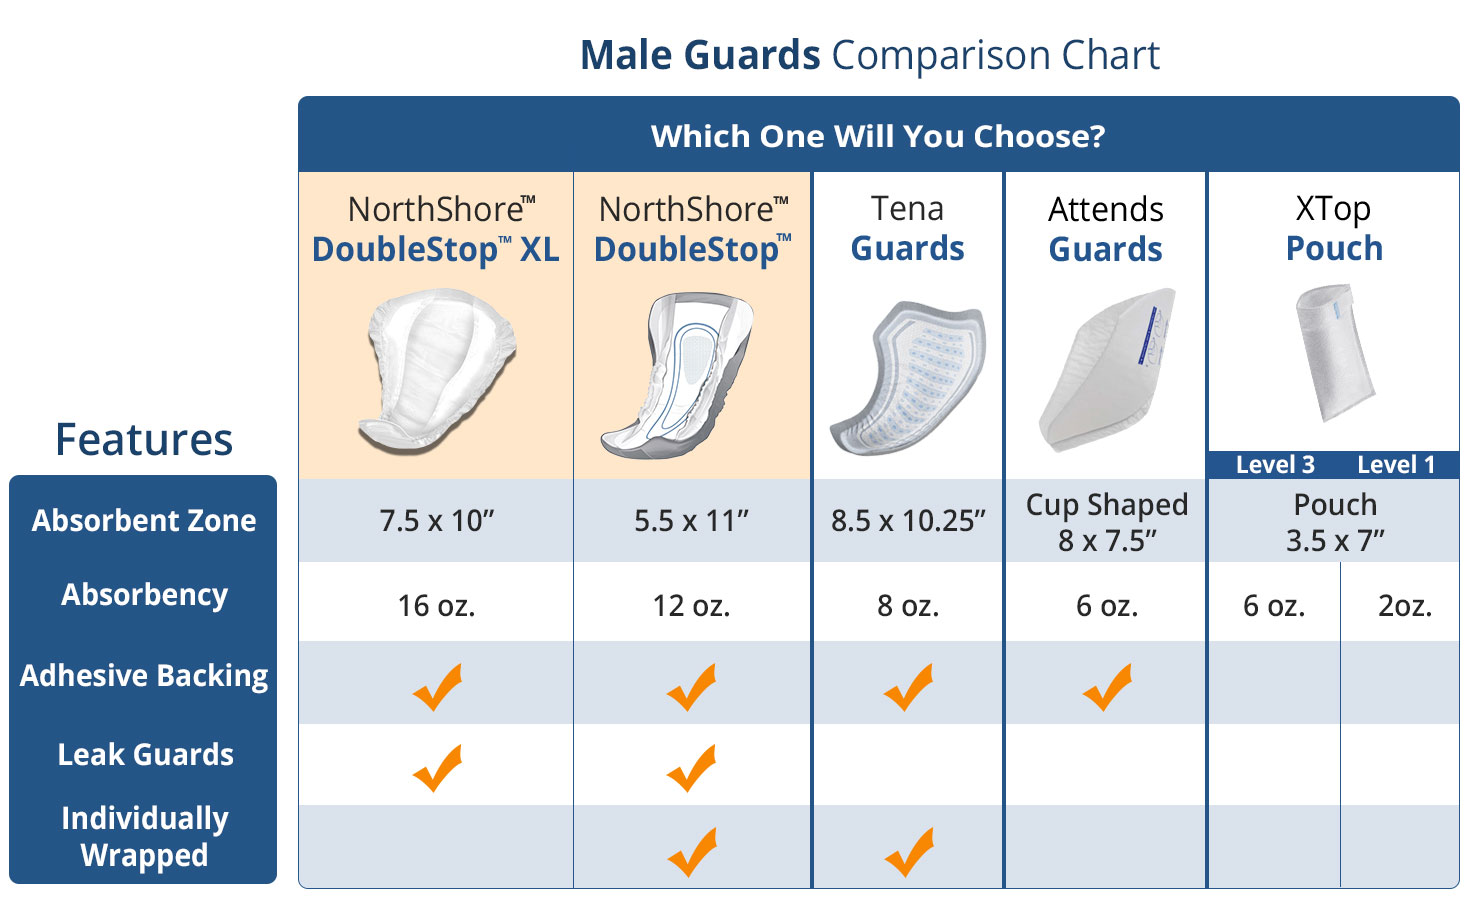 northshore_male_guards_cc.jpg